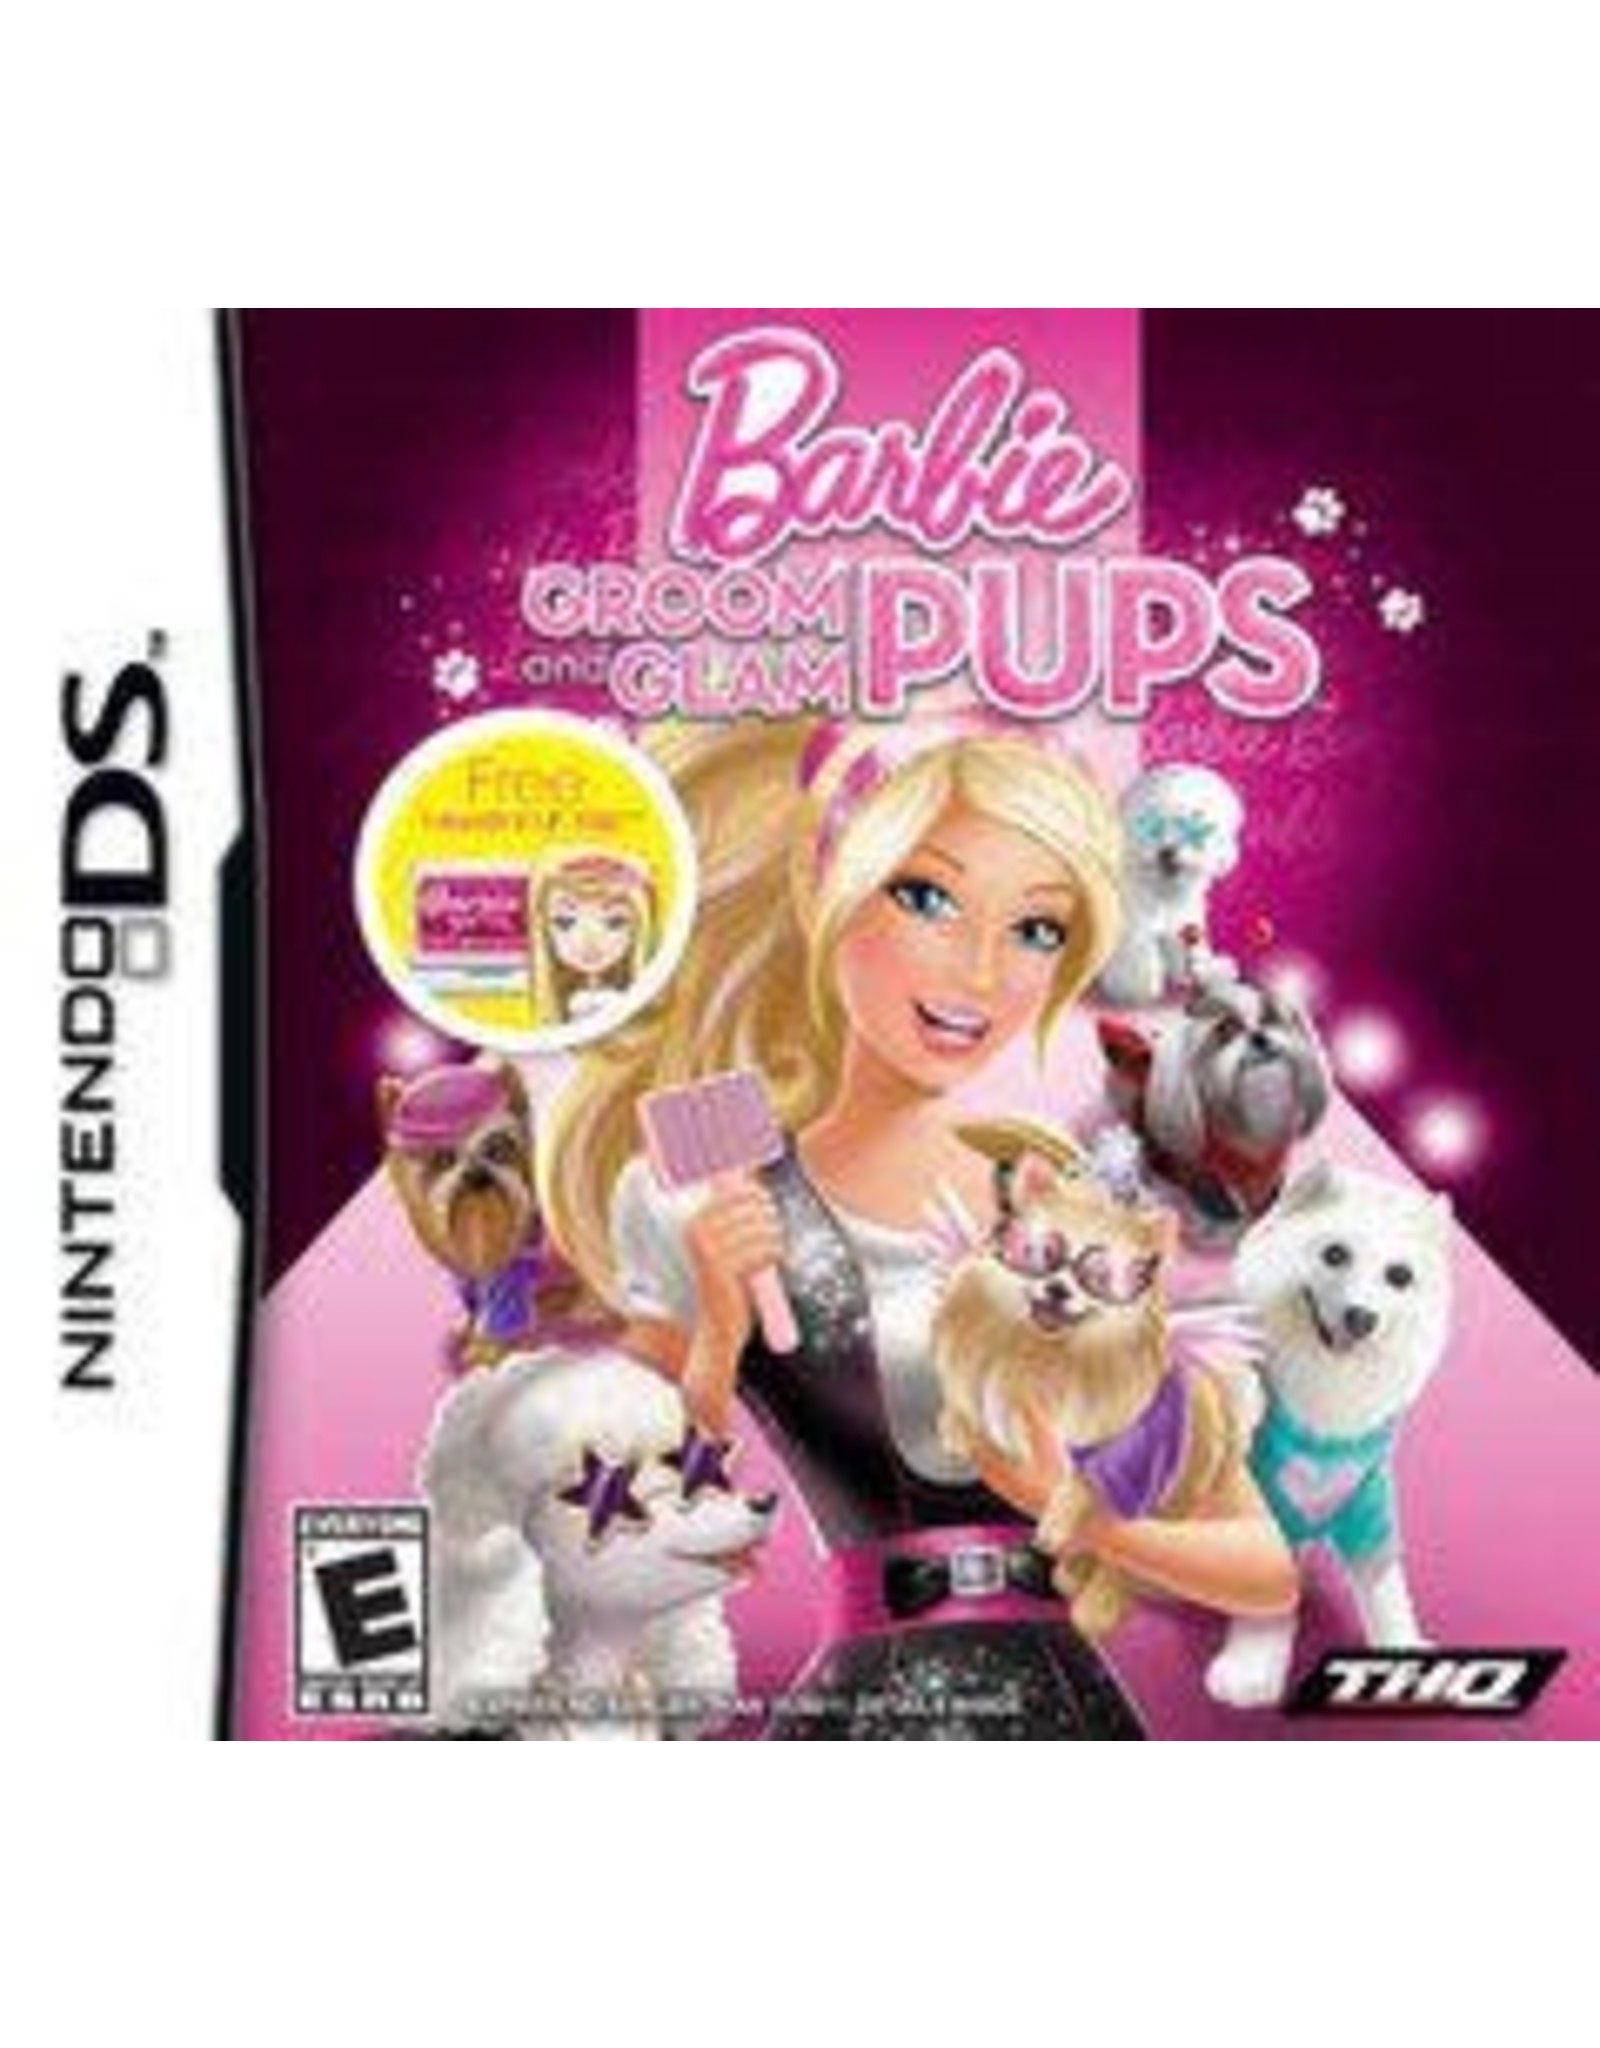 Nintendo DS Barbie: Groom and Glam Pups